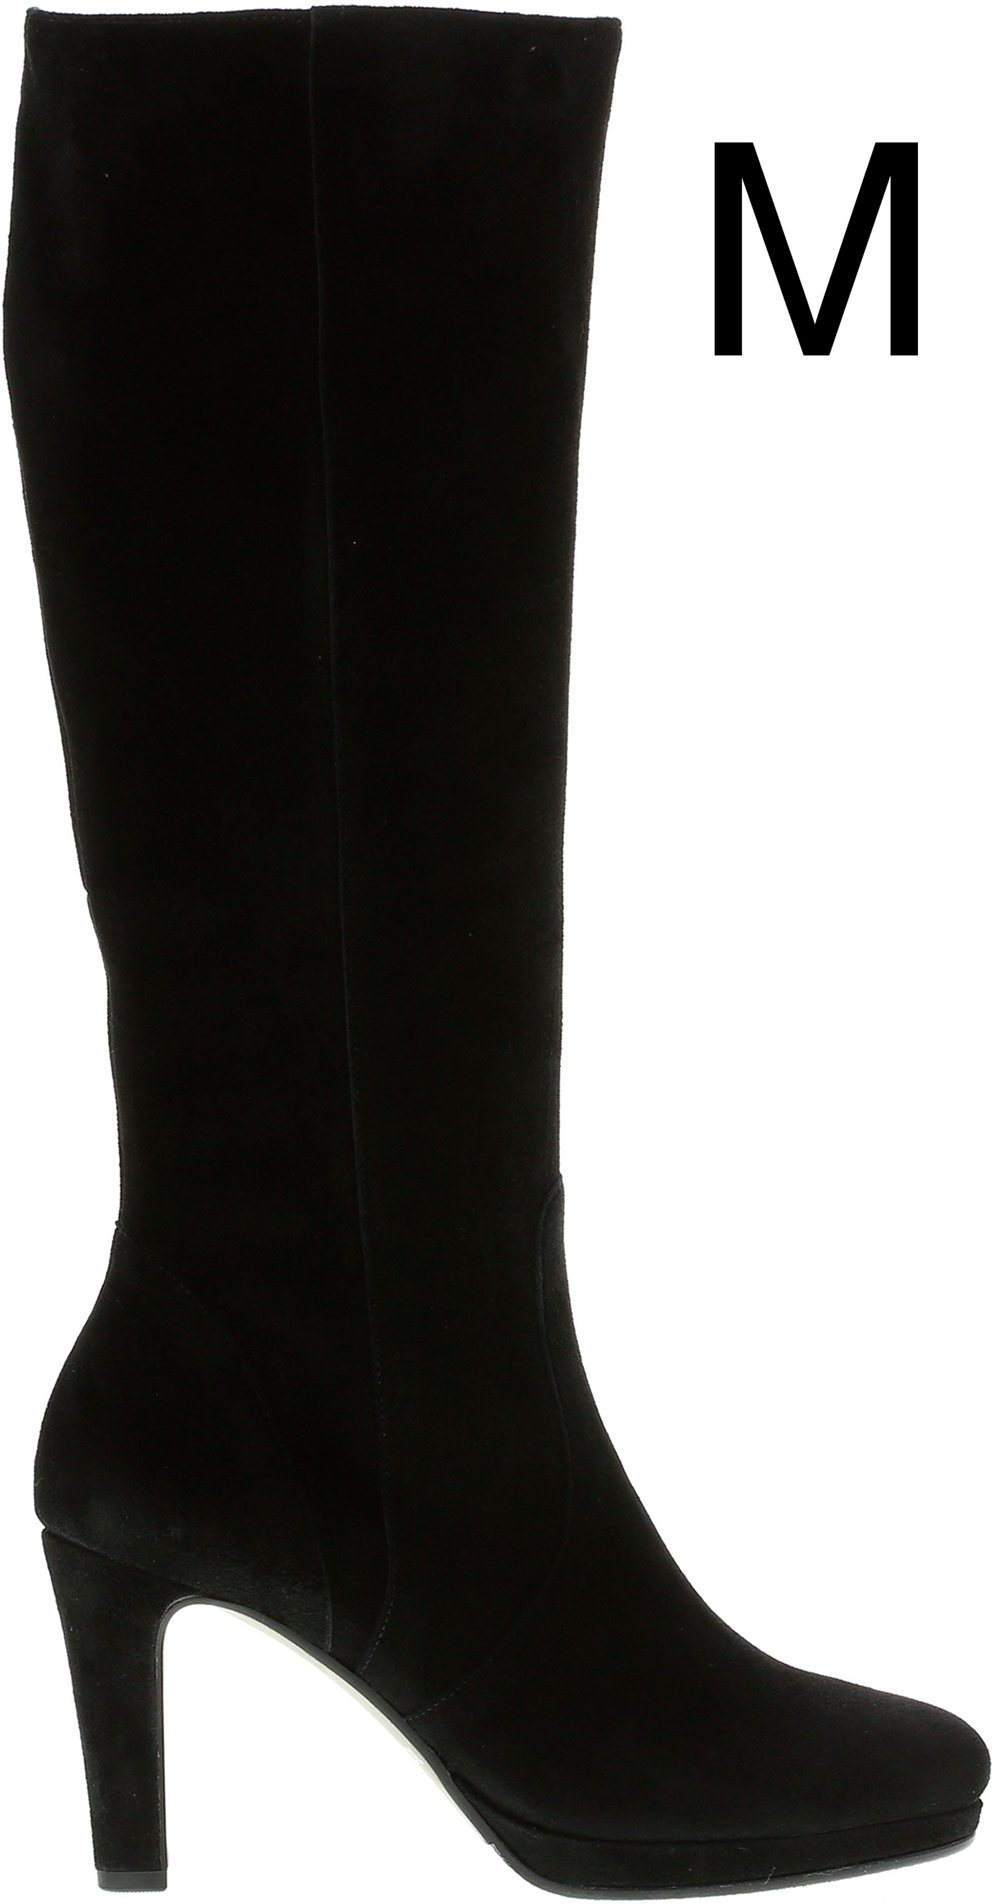 a1dca54c3d886 Gabor Drama Black Suede 75.709.17 - Knee High Boots - Humphries Shoes